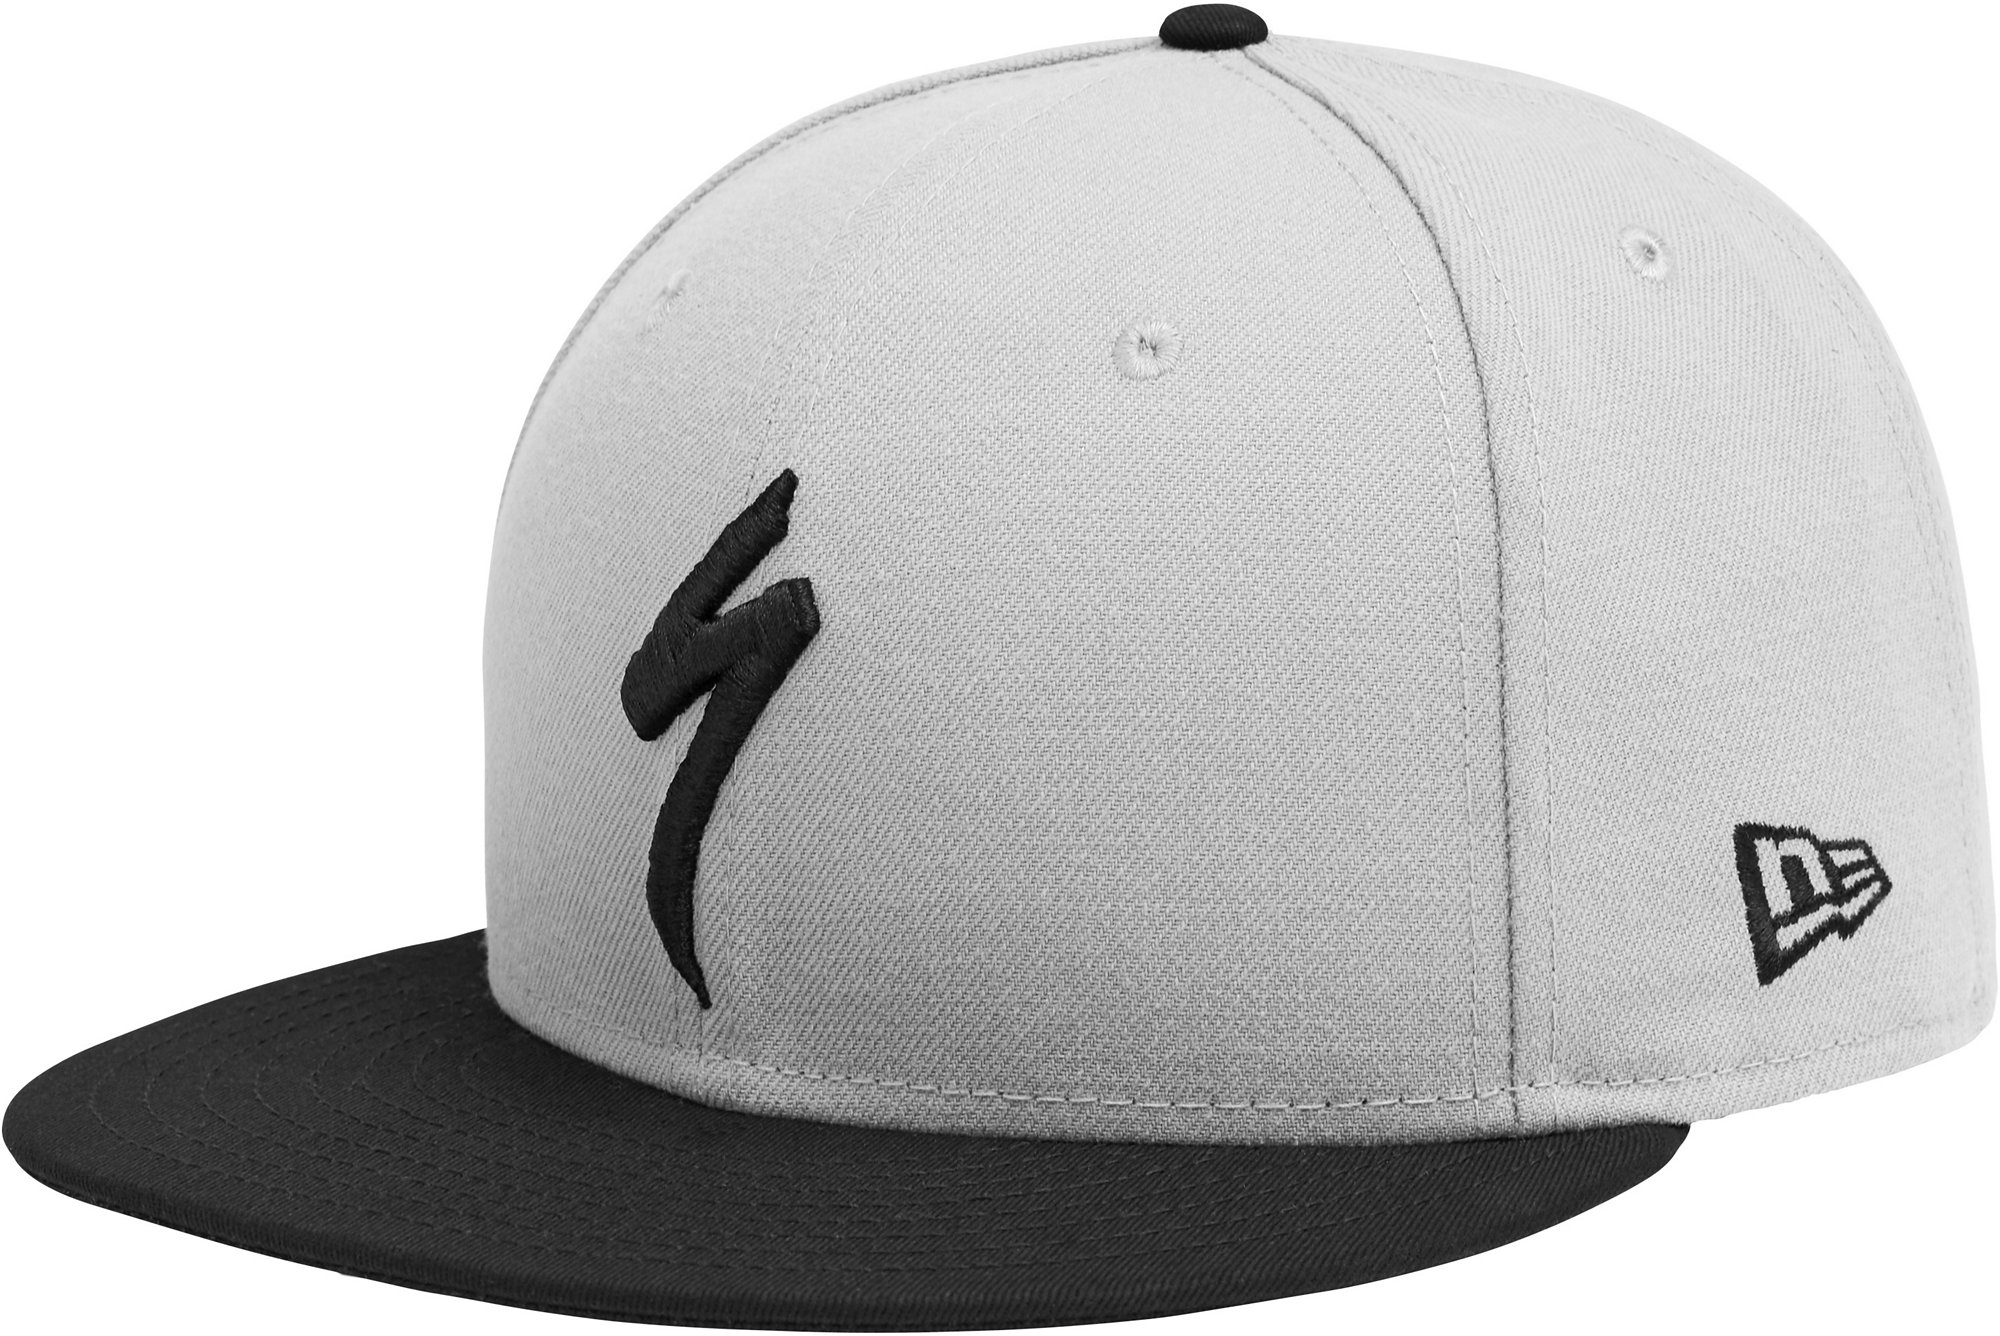 2018 Specialized Specialized New Era 9Fifty Snapback Hat - Specialized  Concept Store fe57de54b0e